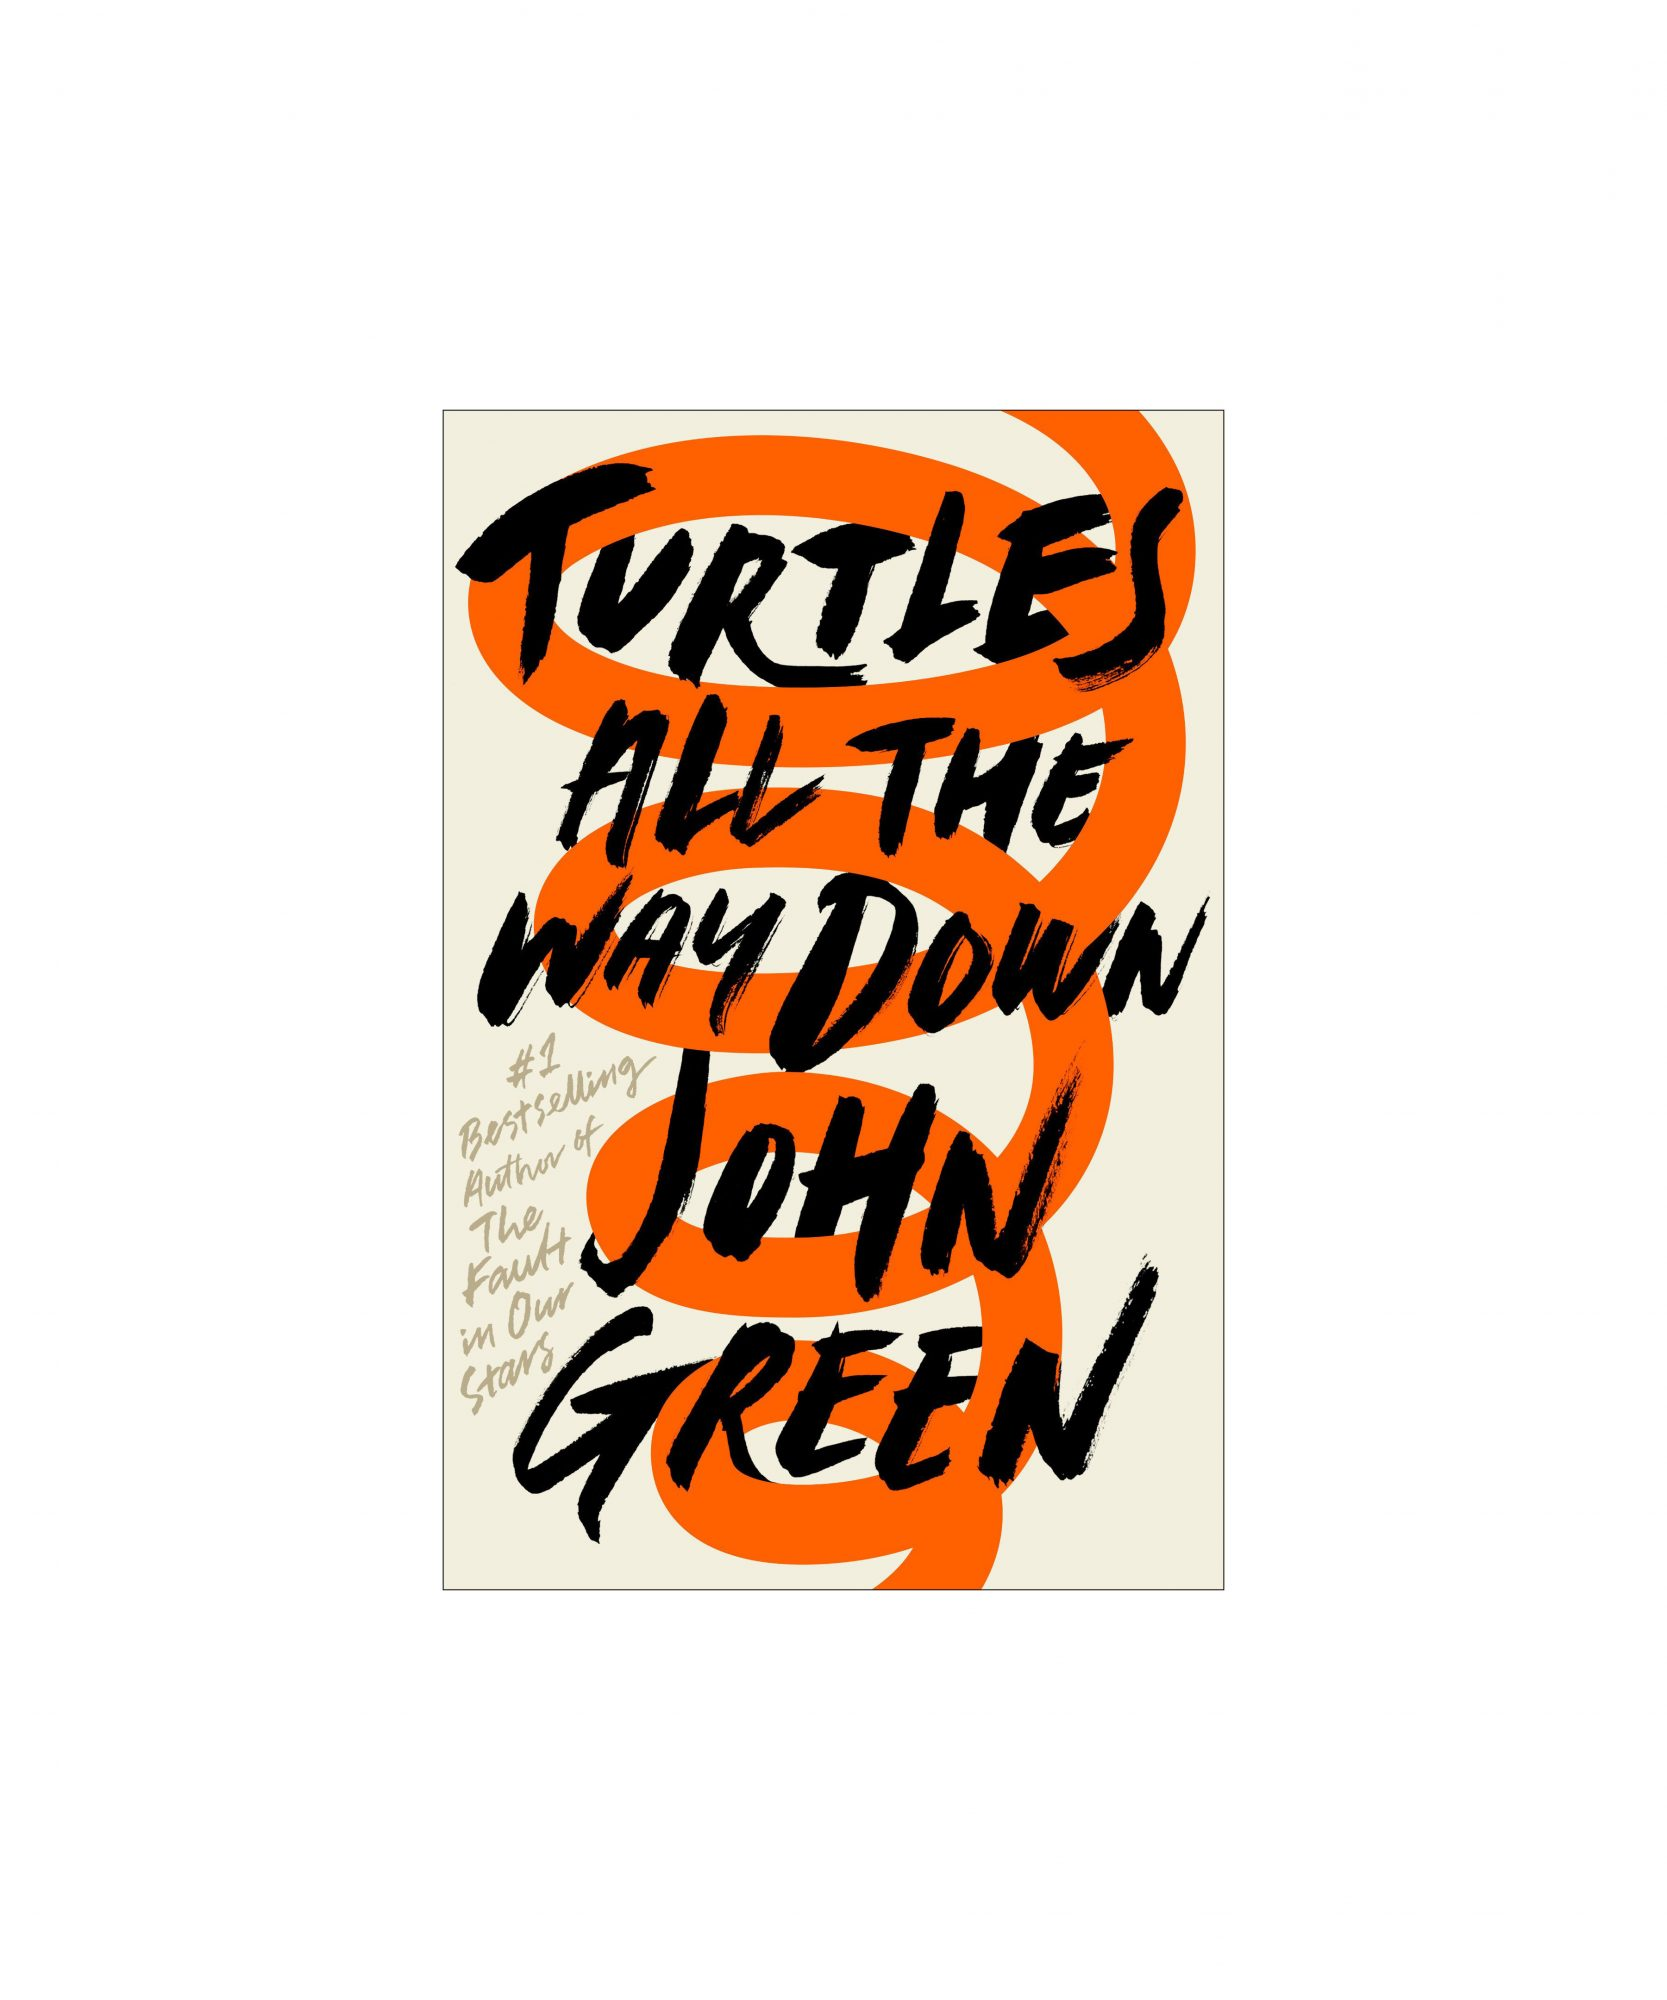 Turtles All the Way Down, by John Green